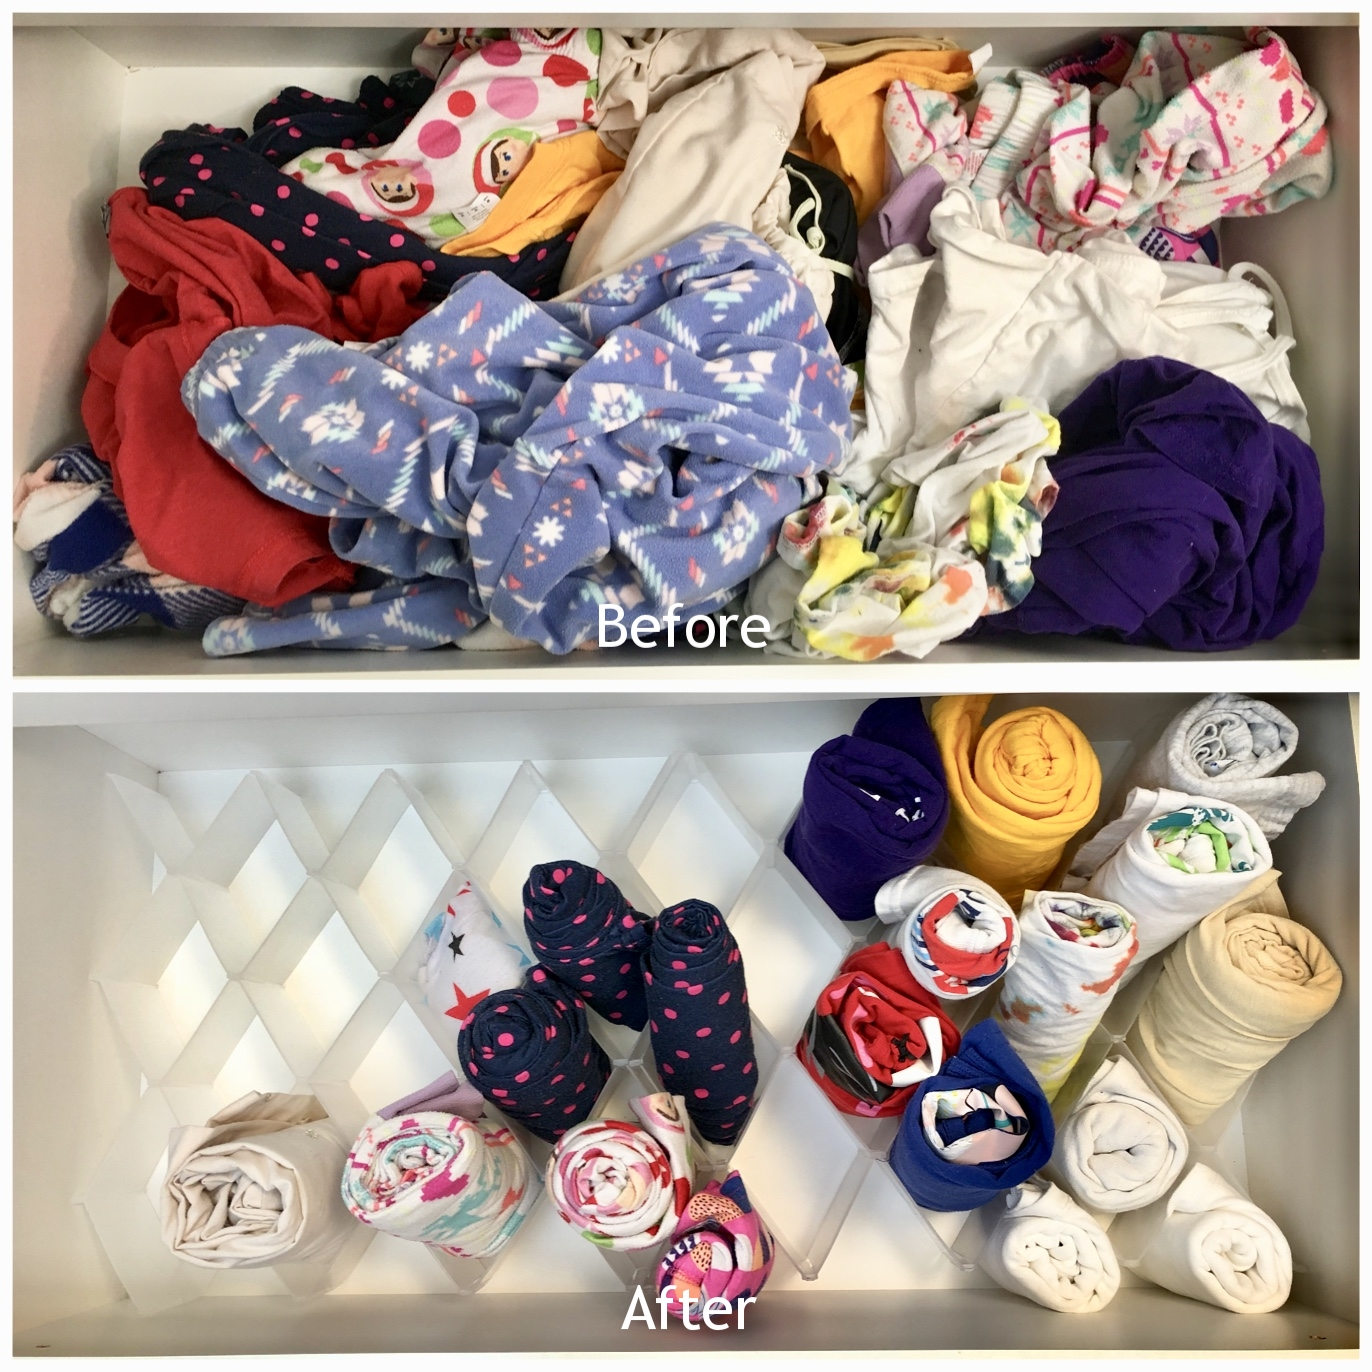 After going through this neglected drawer, we were able to identify a lot of clothing that she had outgrown.